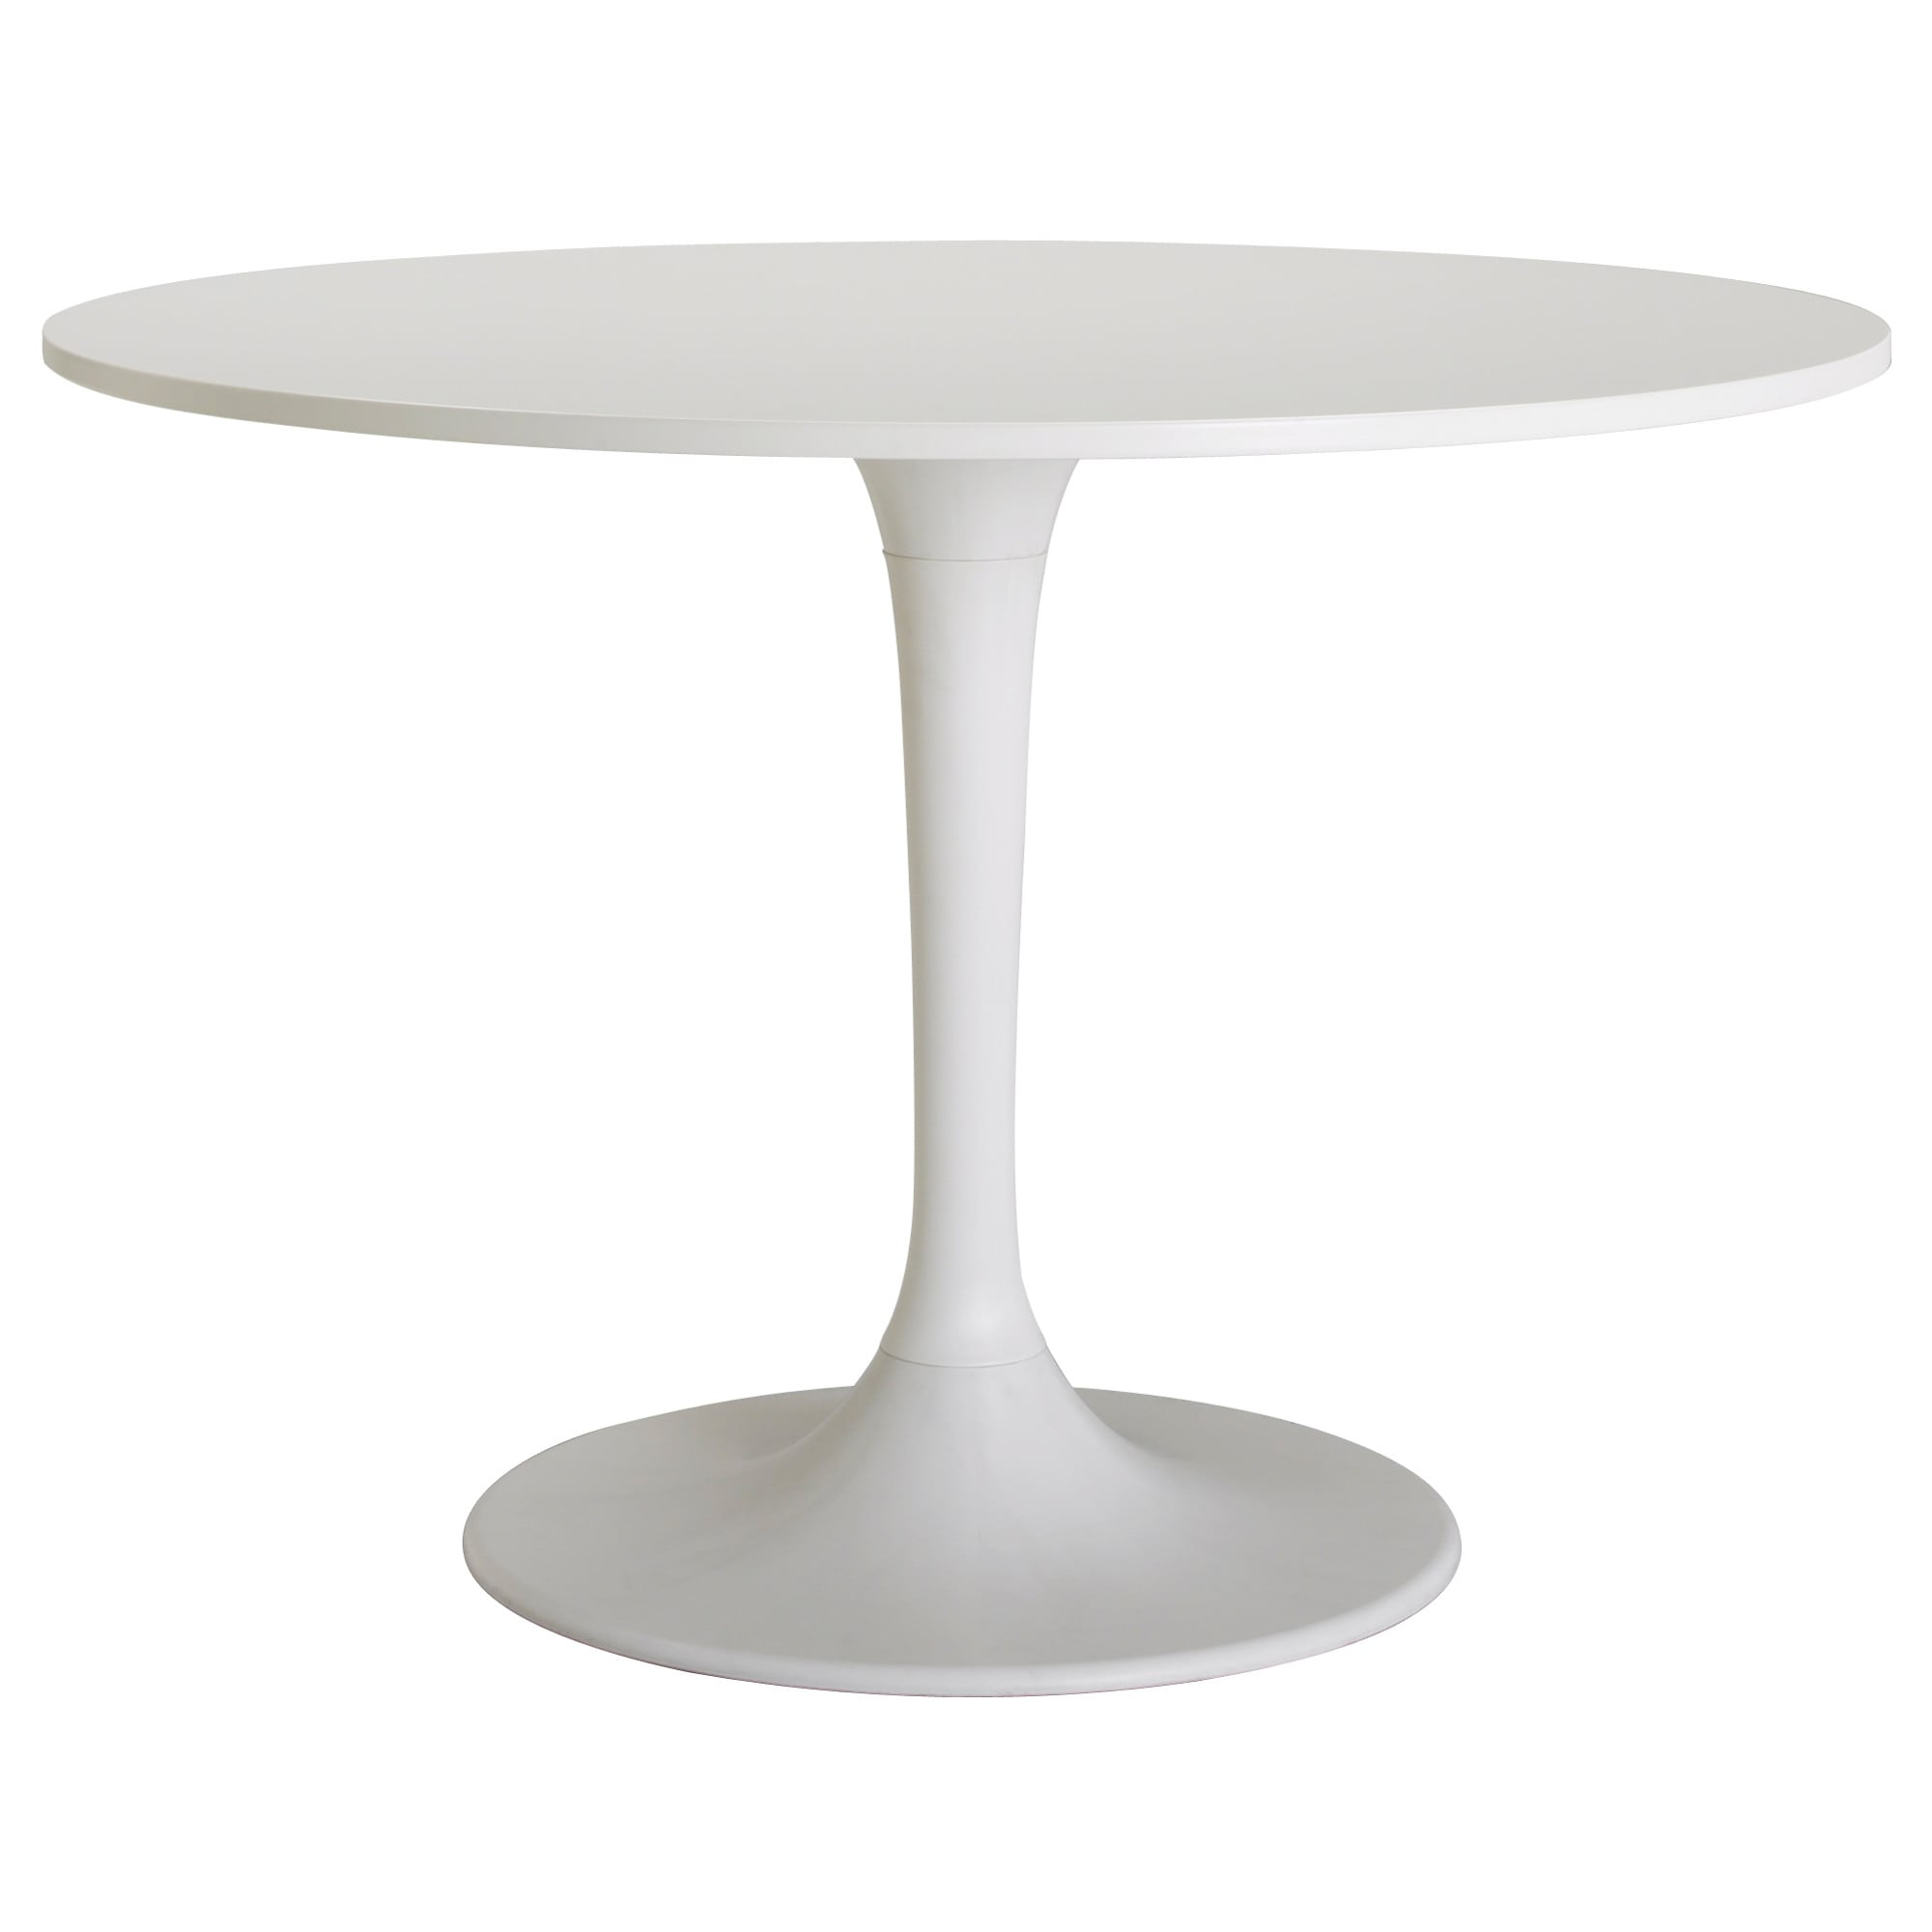 Docksta Table White 41 Ikea Tulip Table White Dining Table